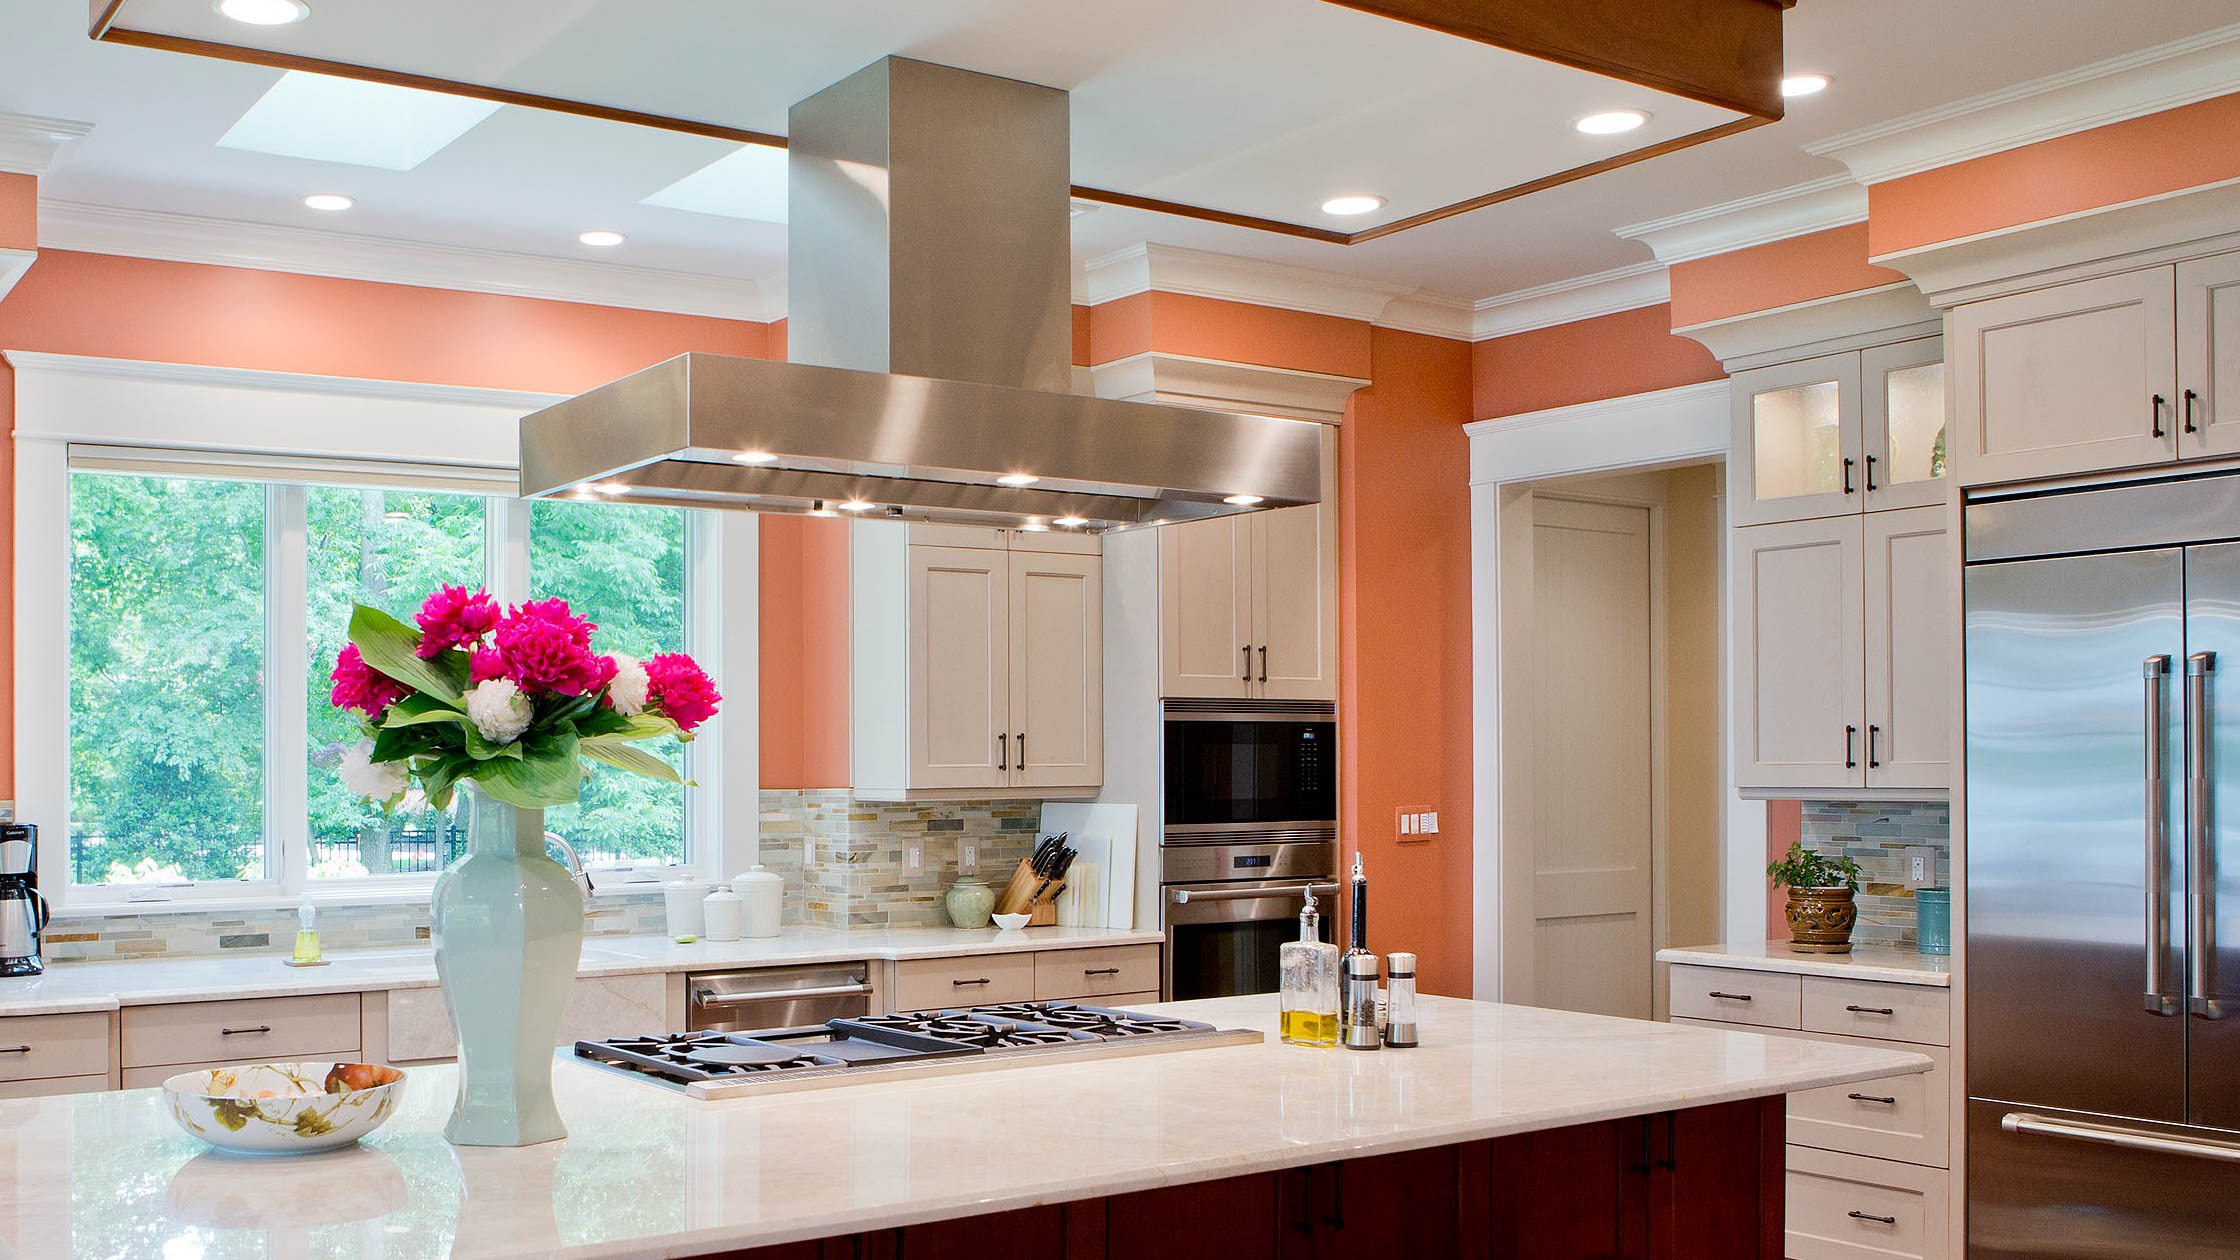 A colorful kitchen in this home outside of Alexandria, Virginia. This large Northern Virginia home has ample space to entertain guests with a large center island.